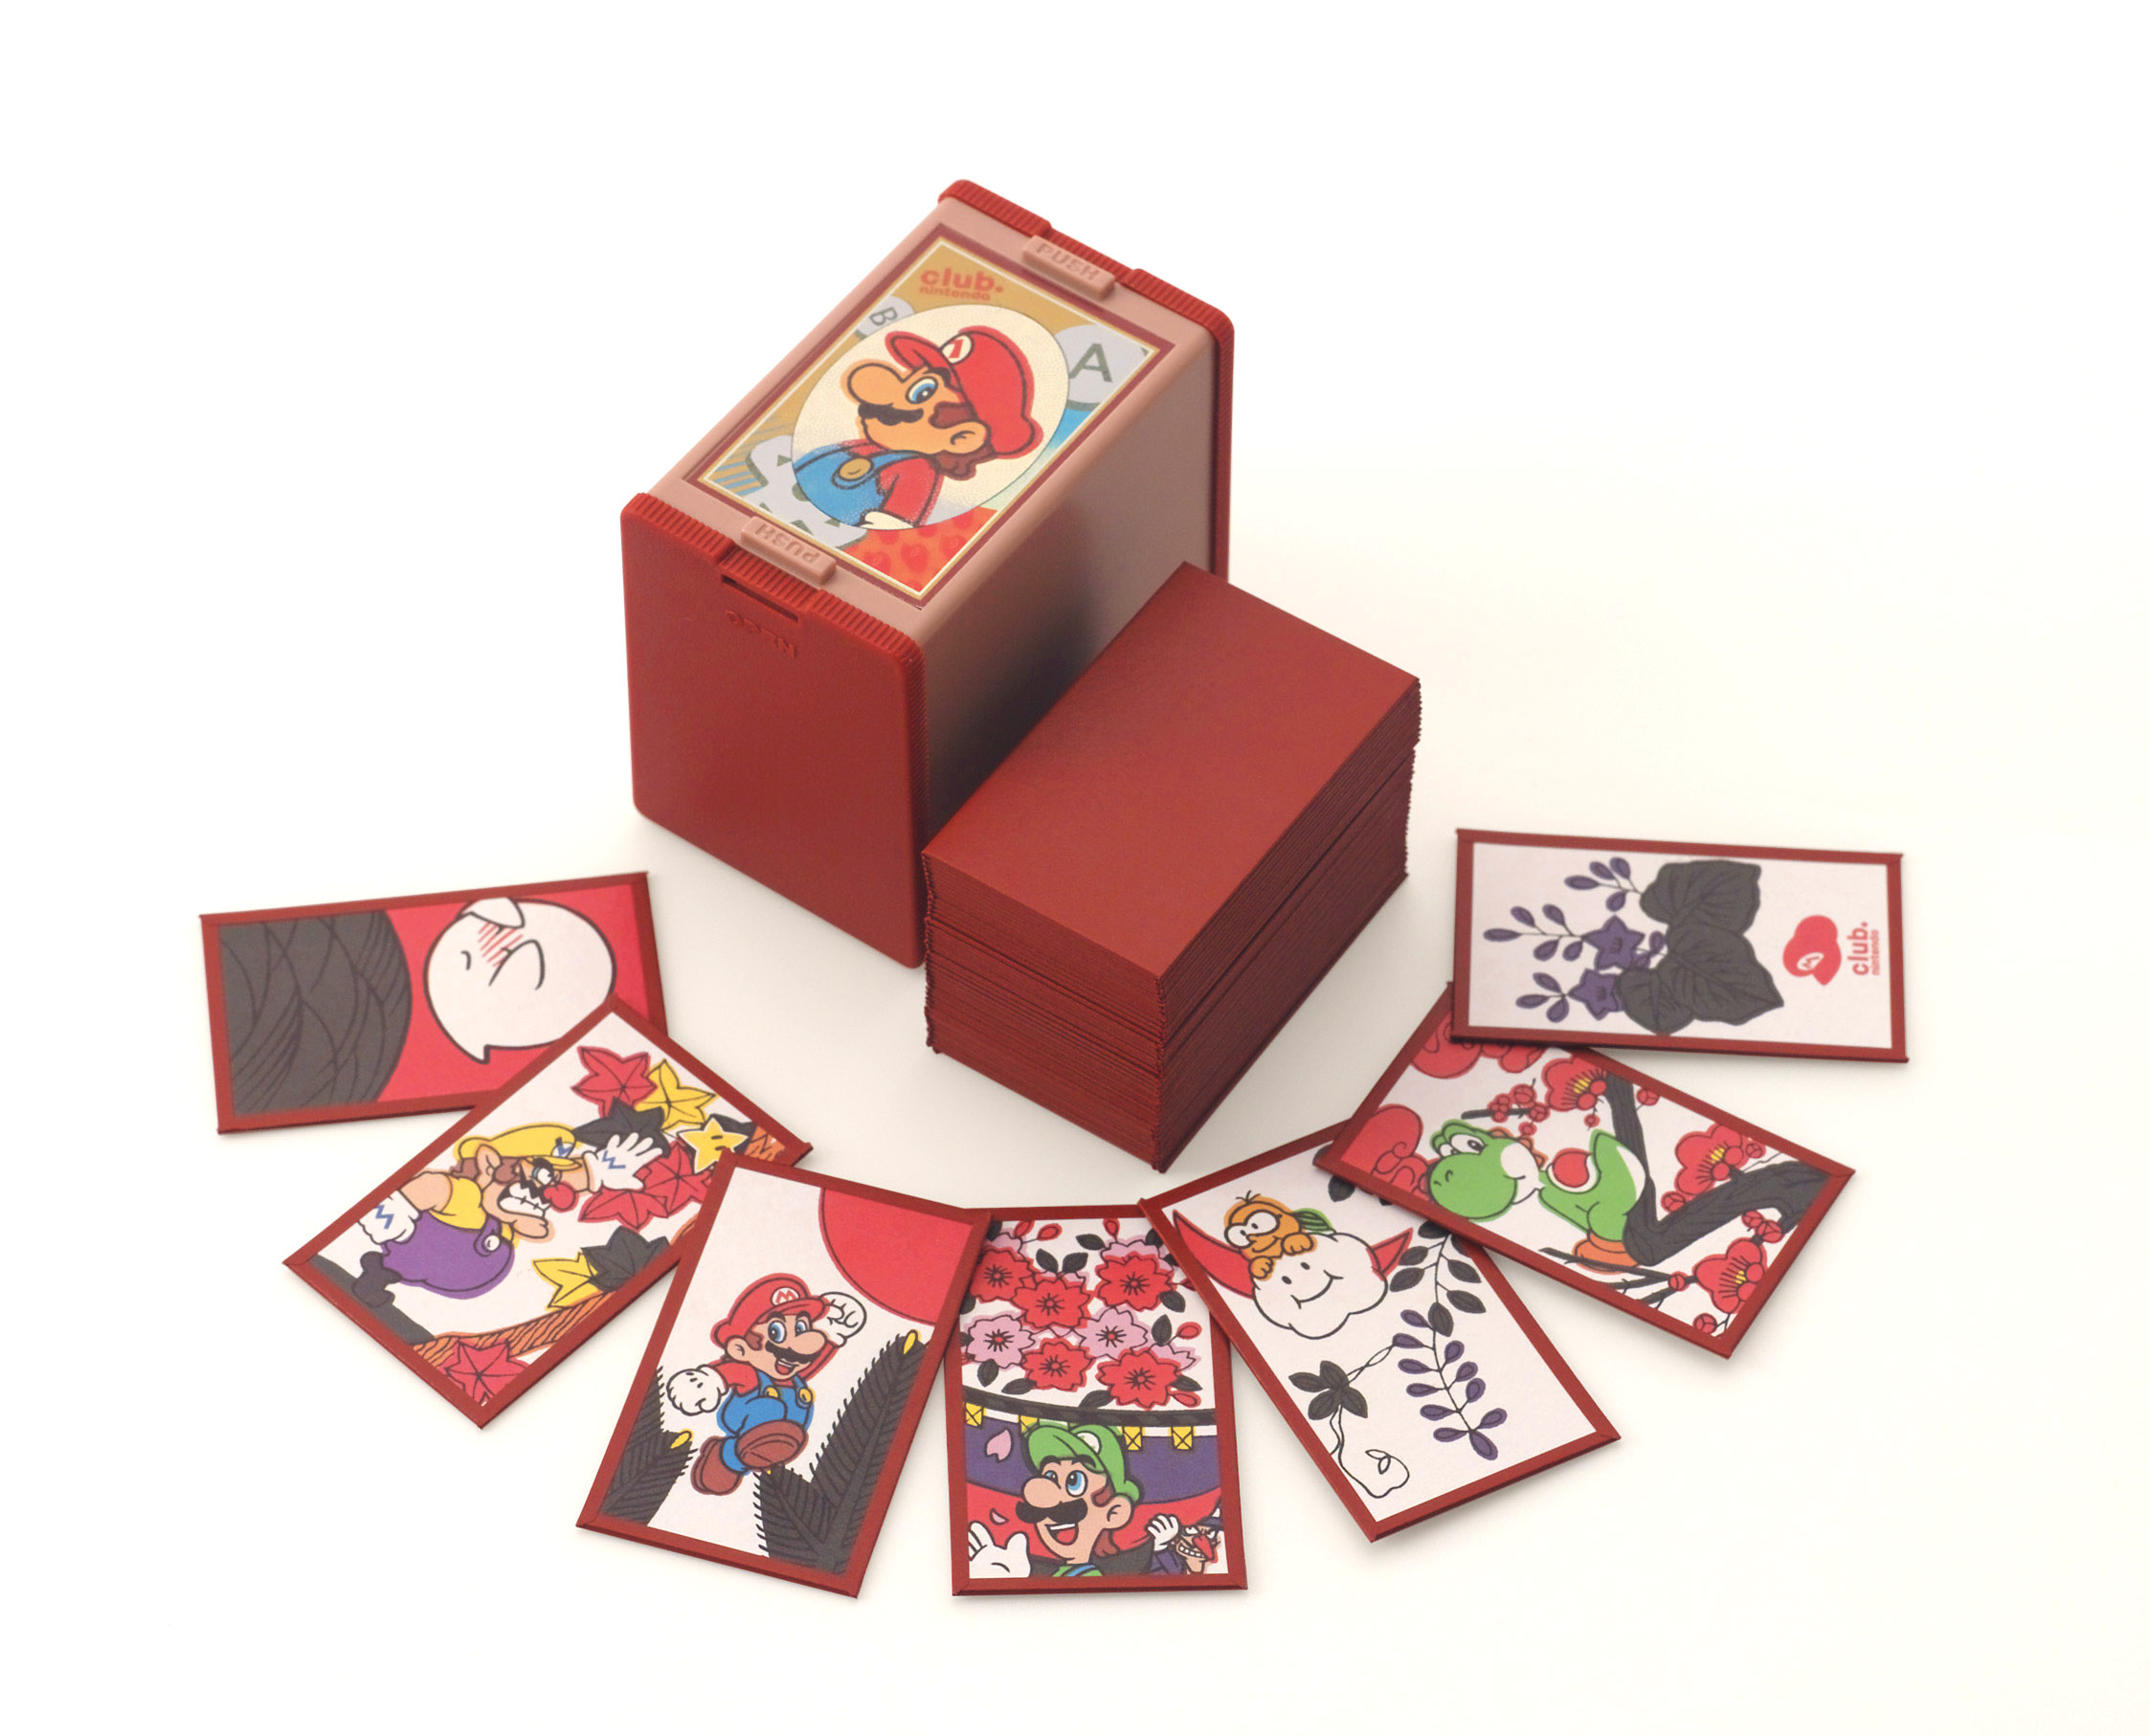 Short doc examines the history of Nintendo's Hanafuda cards and alleged Yakuza ties screenshot